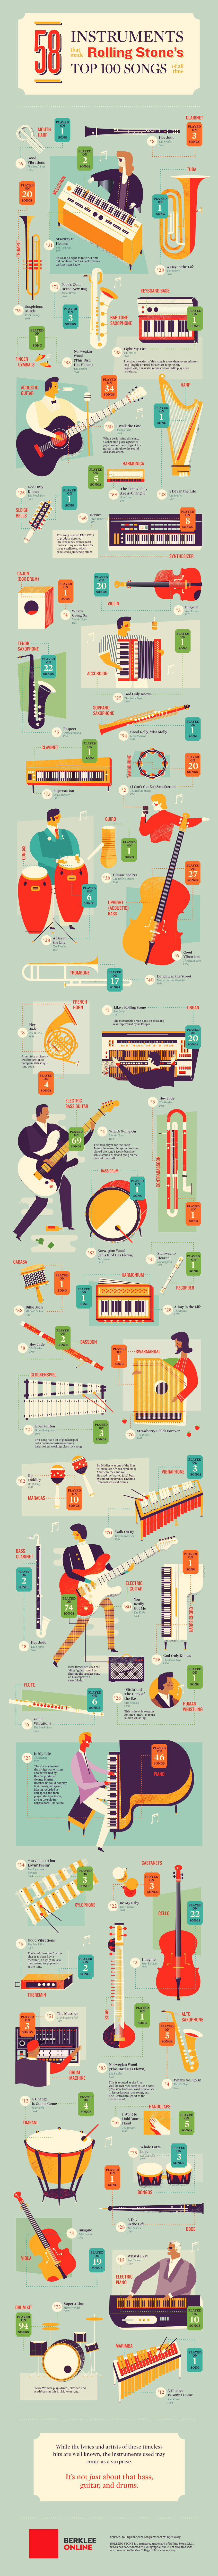 rolling stone instruments infographic